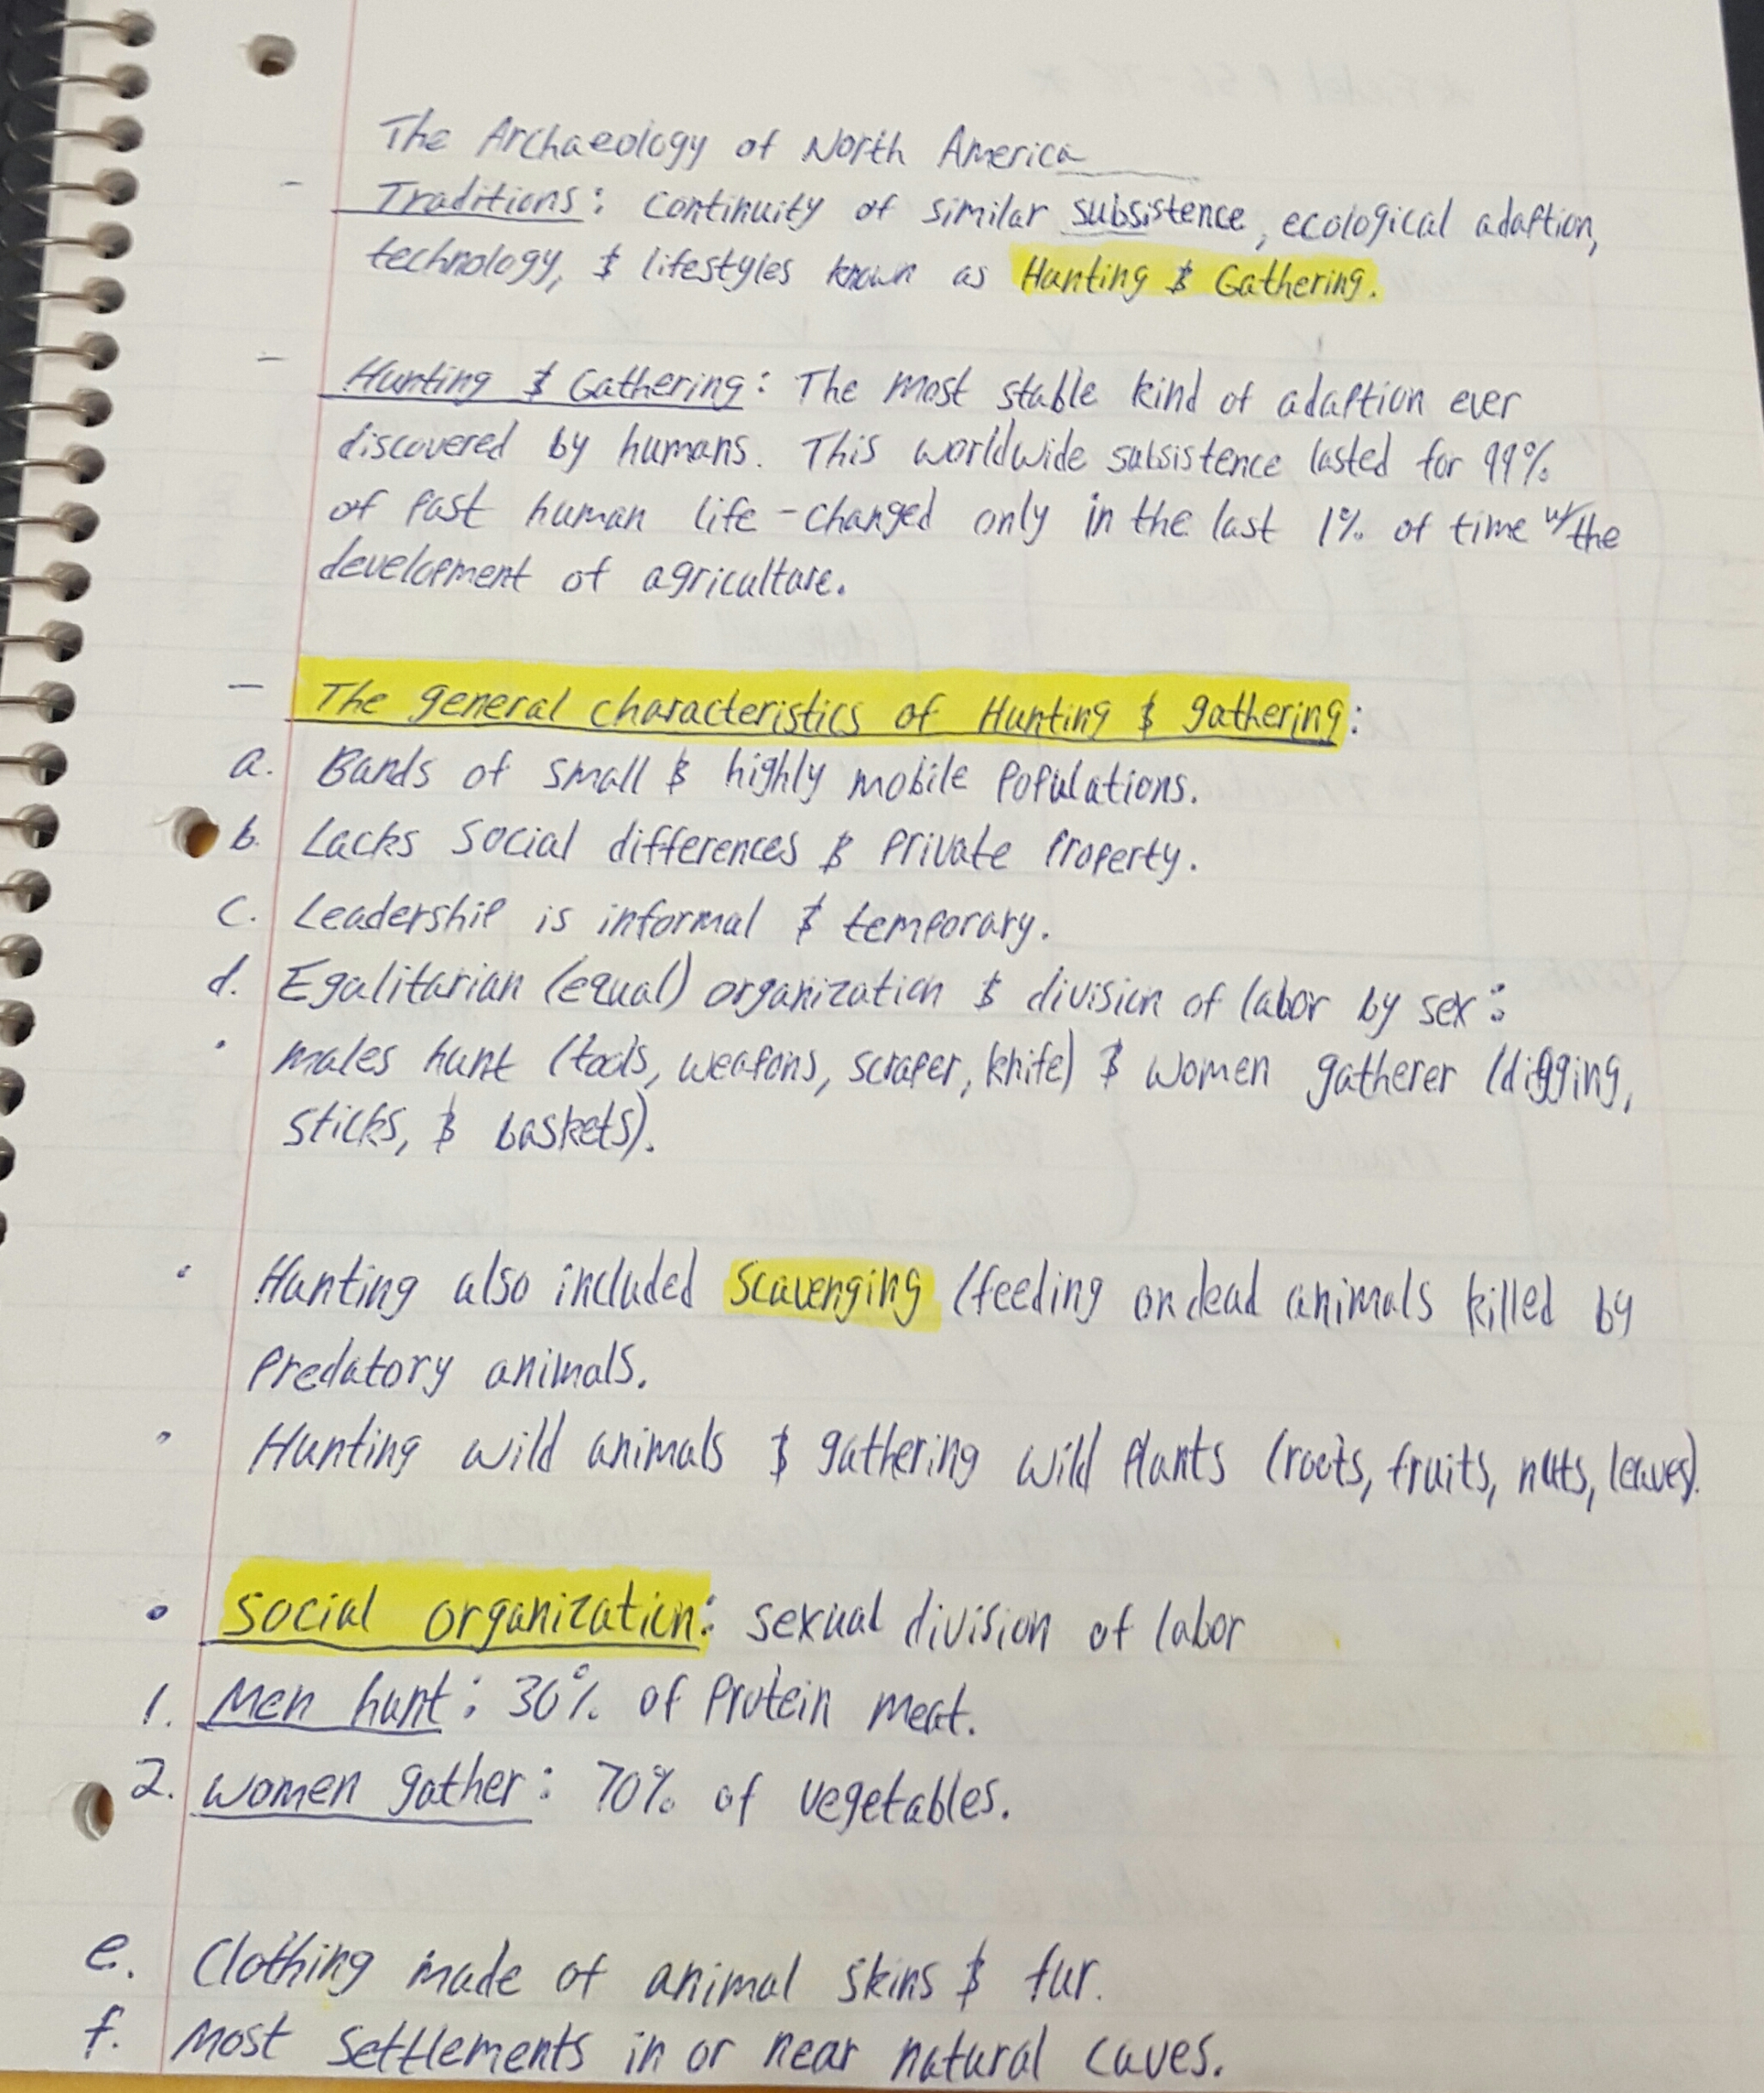 ANTH 175 - Class Notes - Week 4